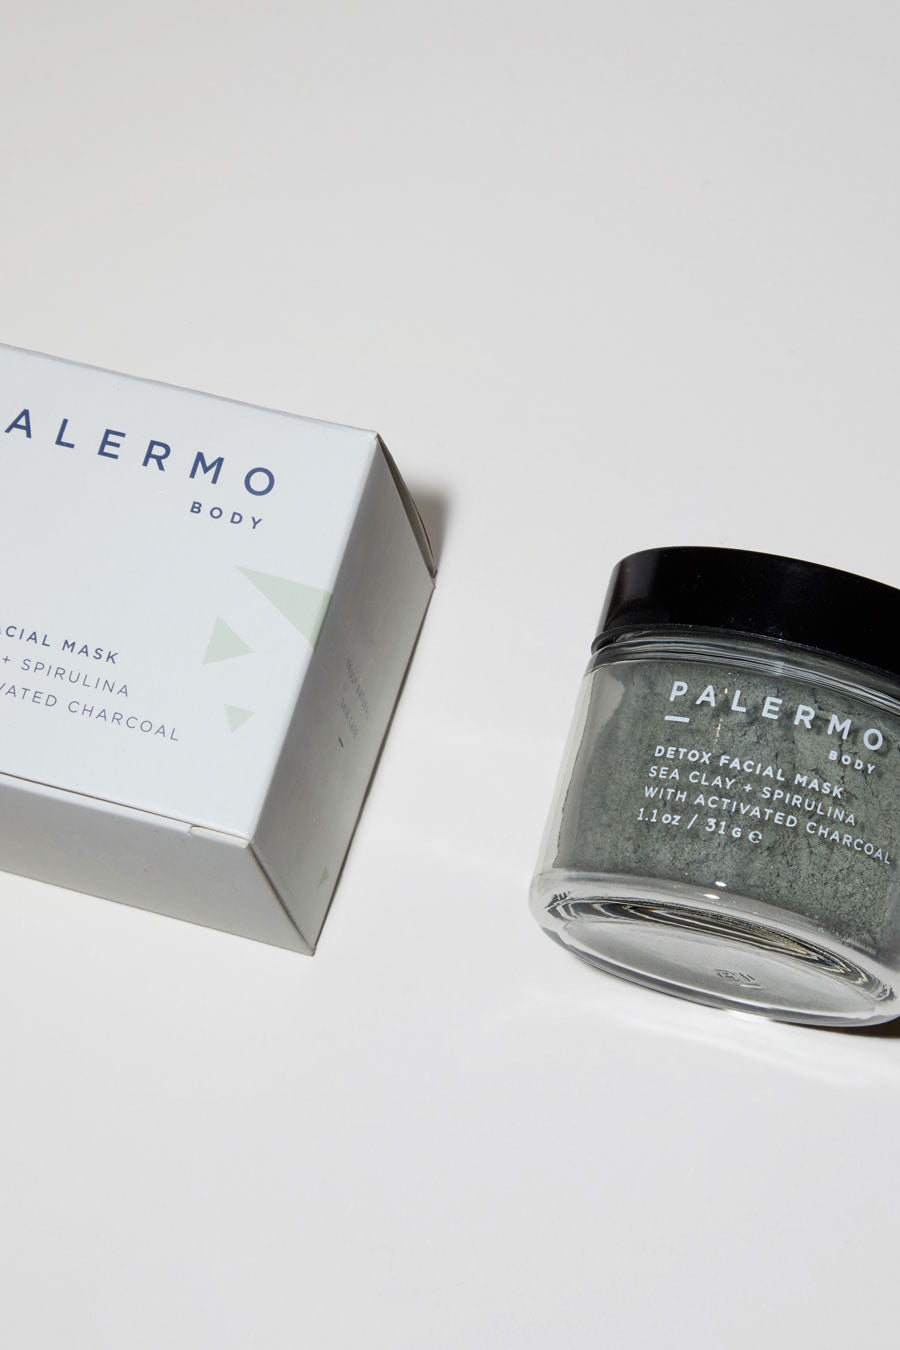 Palermo Body Detox Facial Mask